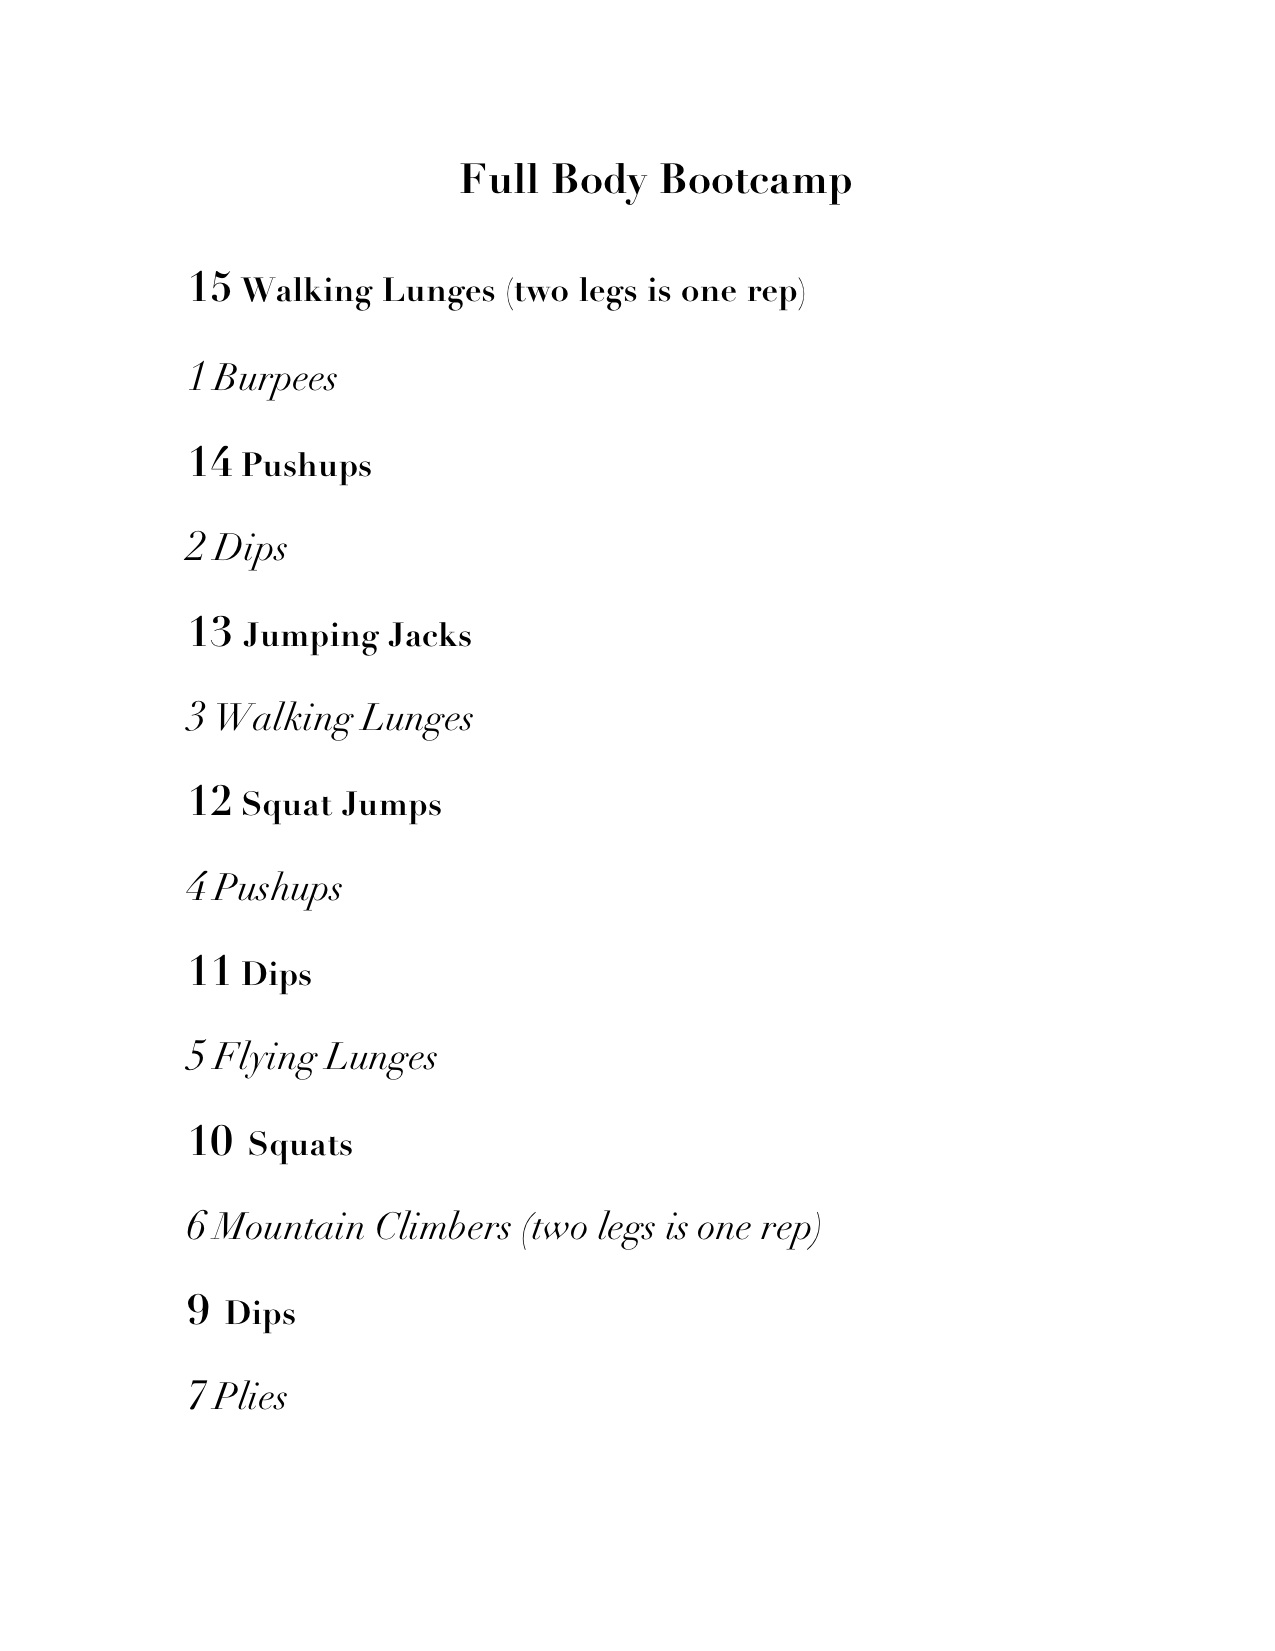 Full Body Bootcamp Printable Workout